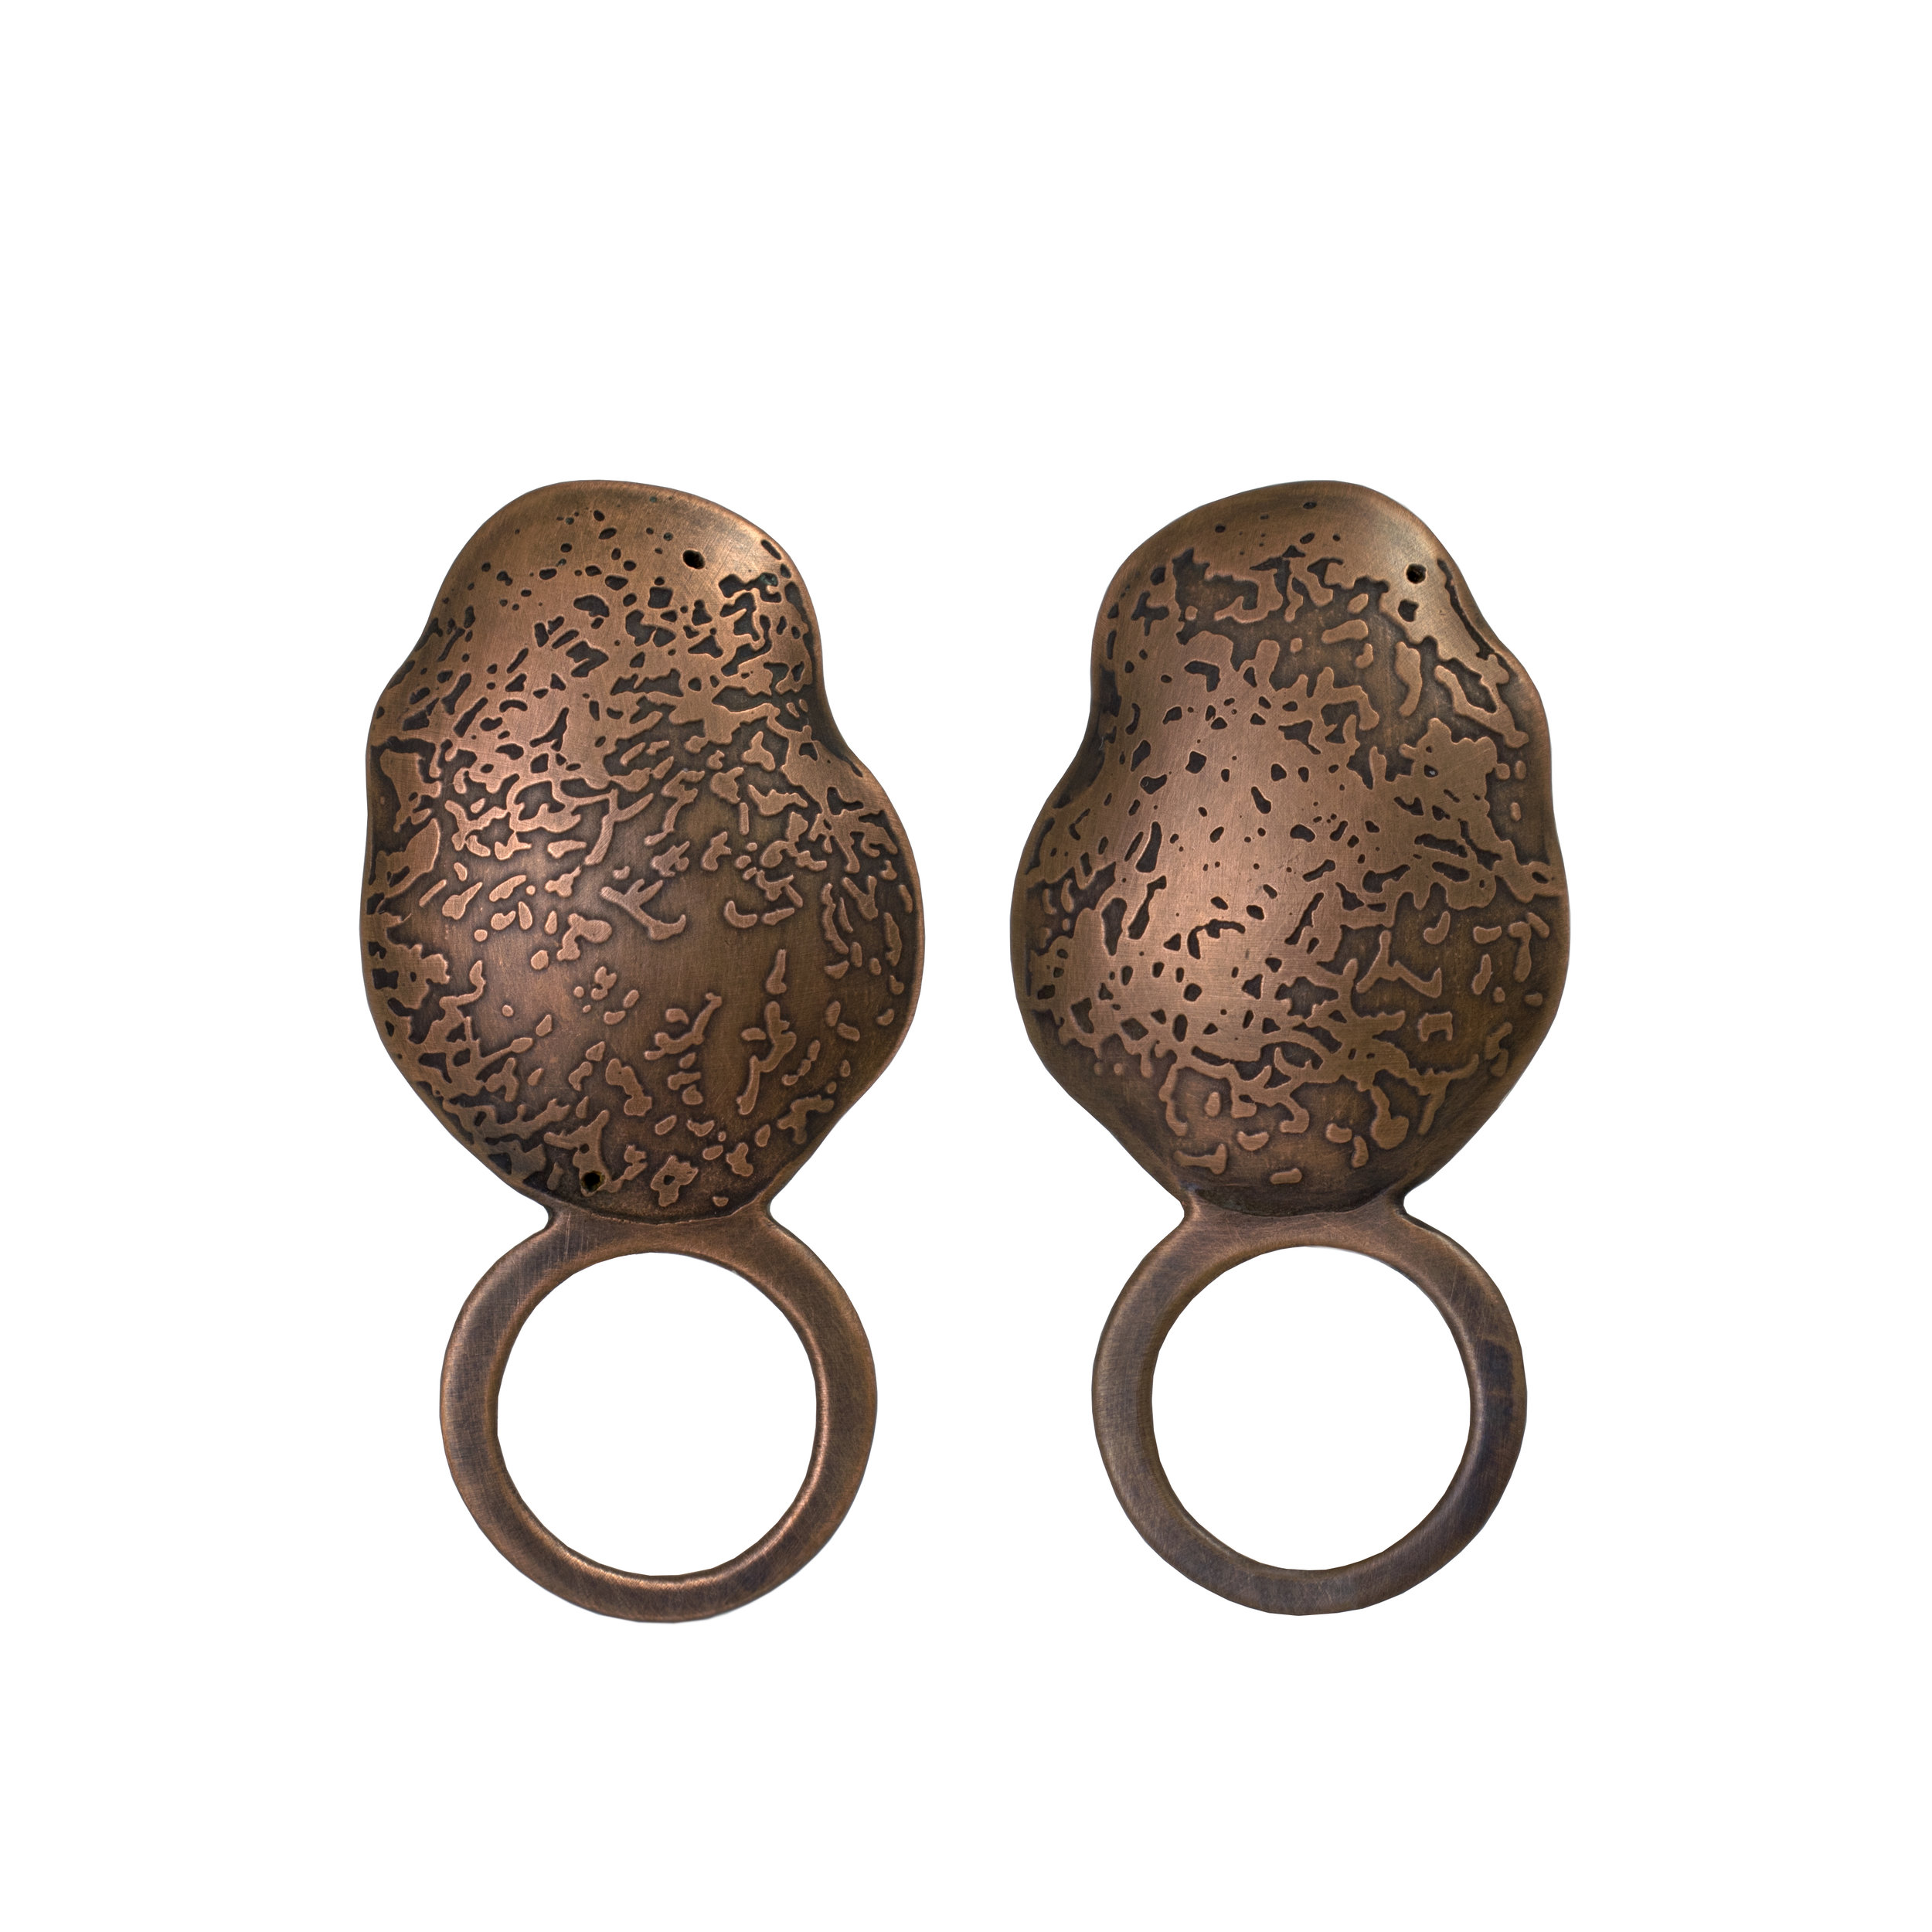 Dappled Puff Ring: etched copper